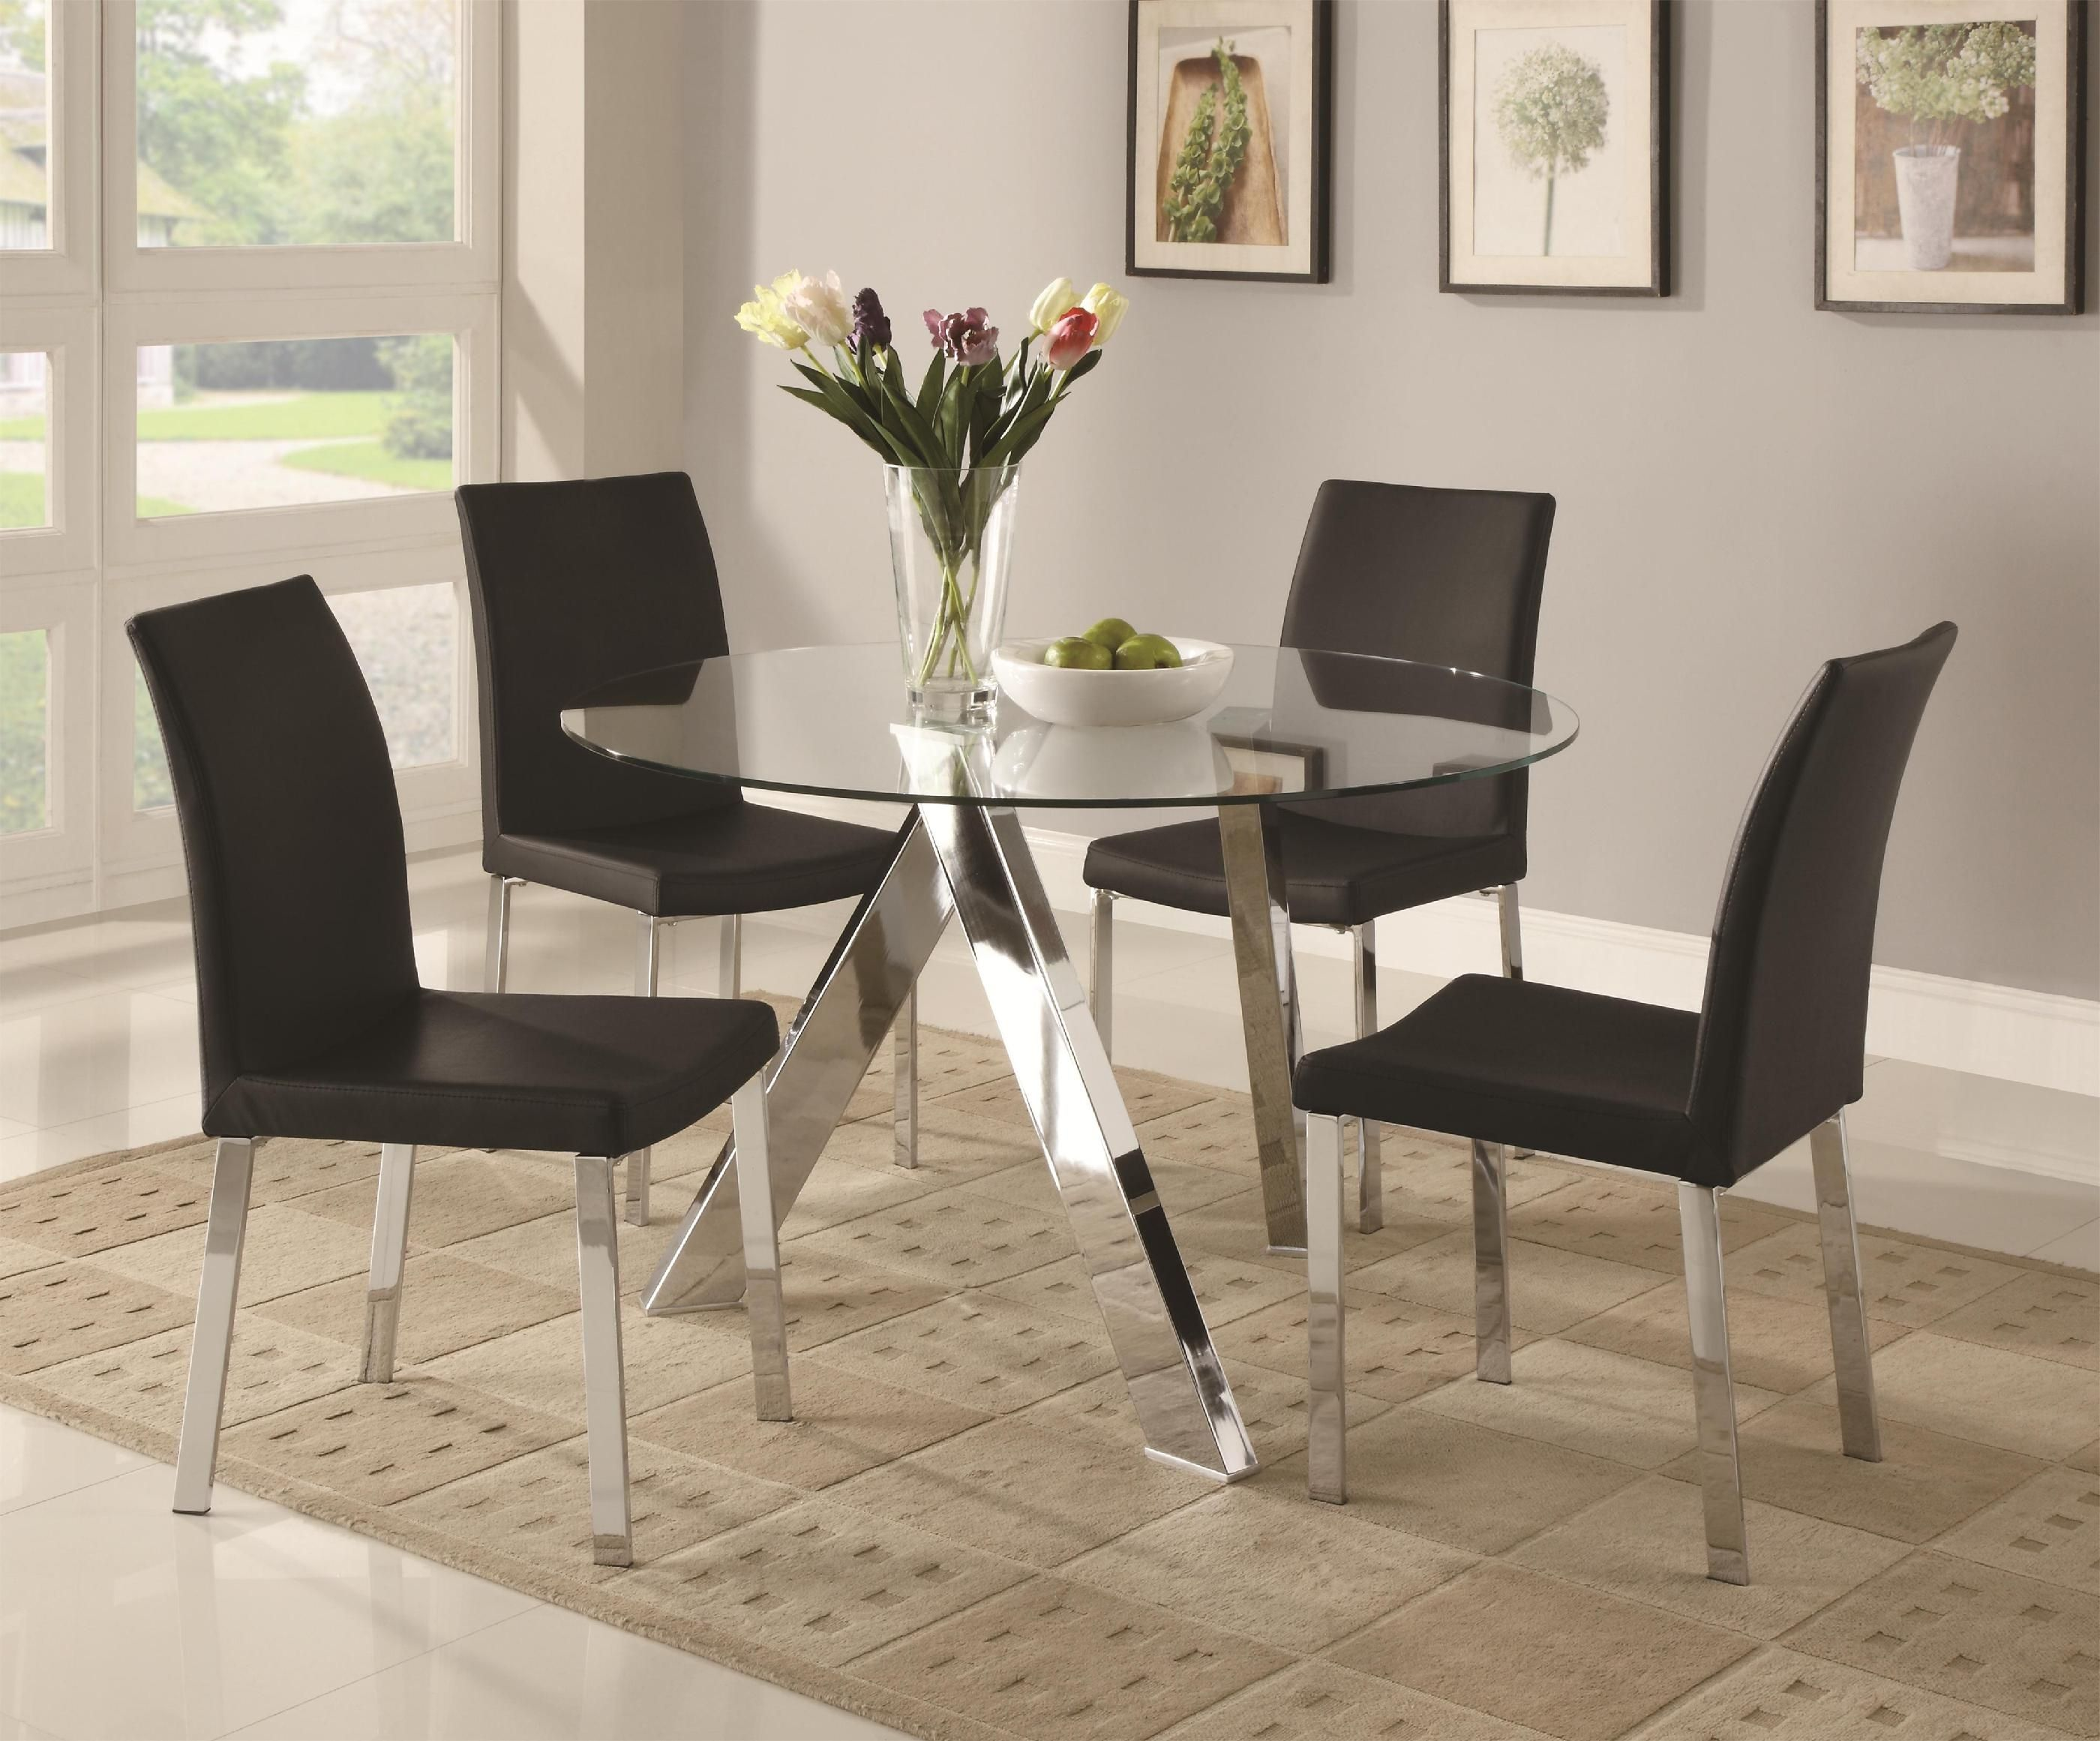 Glass Dining Table Room Furniture Images Set The Marvellous Digital Photography Part For Even